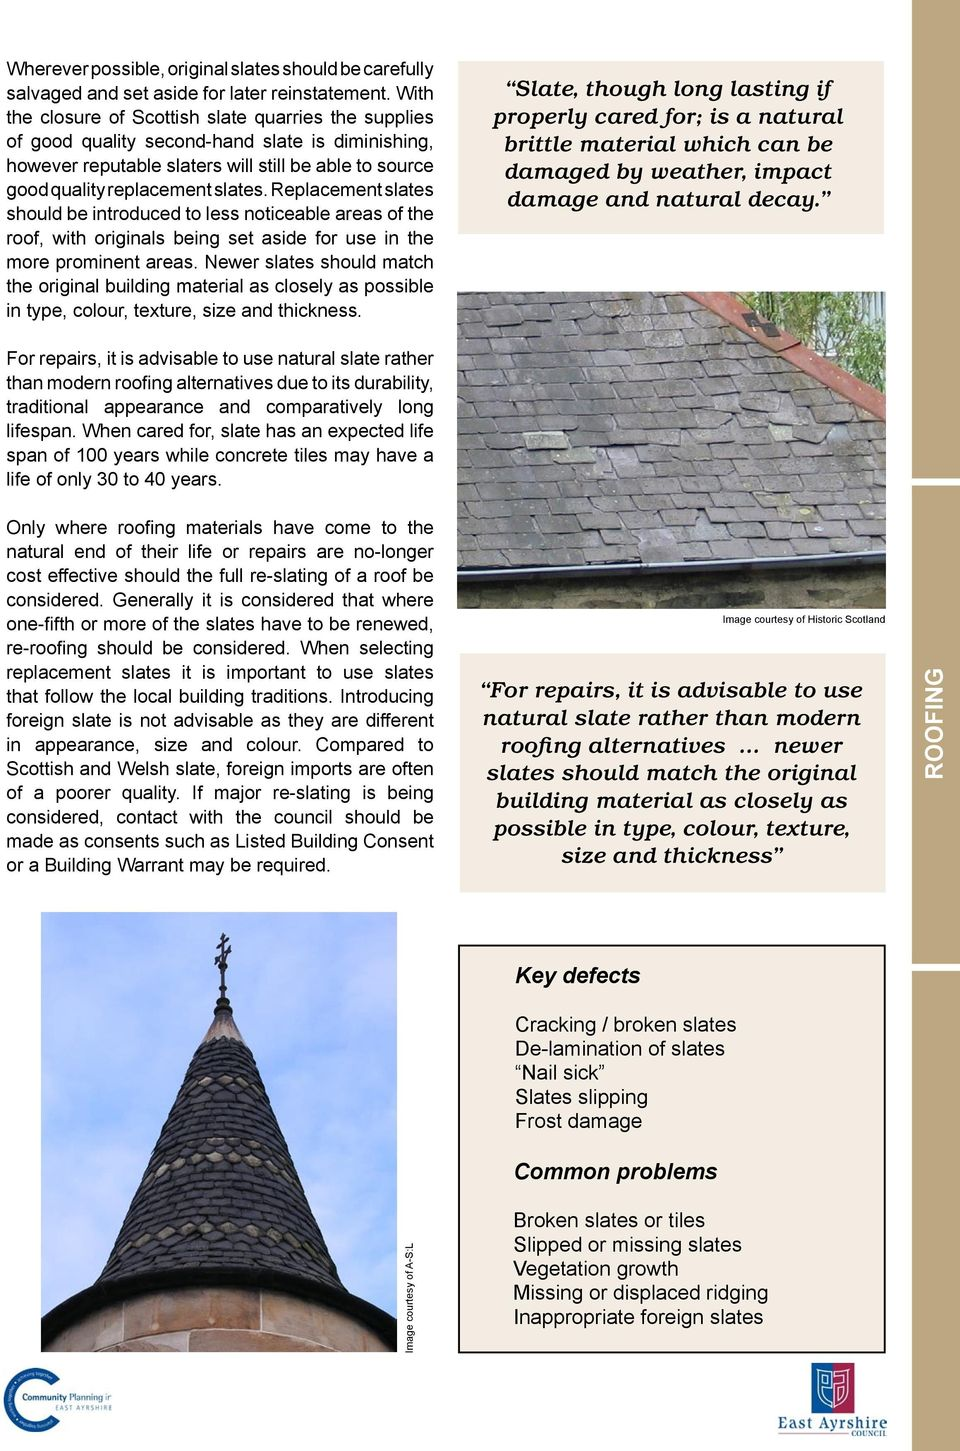 Replacement slates should be introduced to less noticeable areas of the roof, with originals being set aside for use in the more prominent areas.